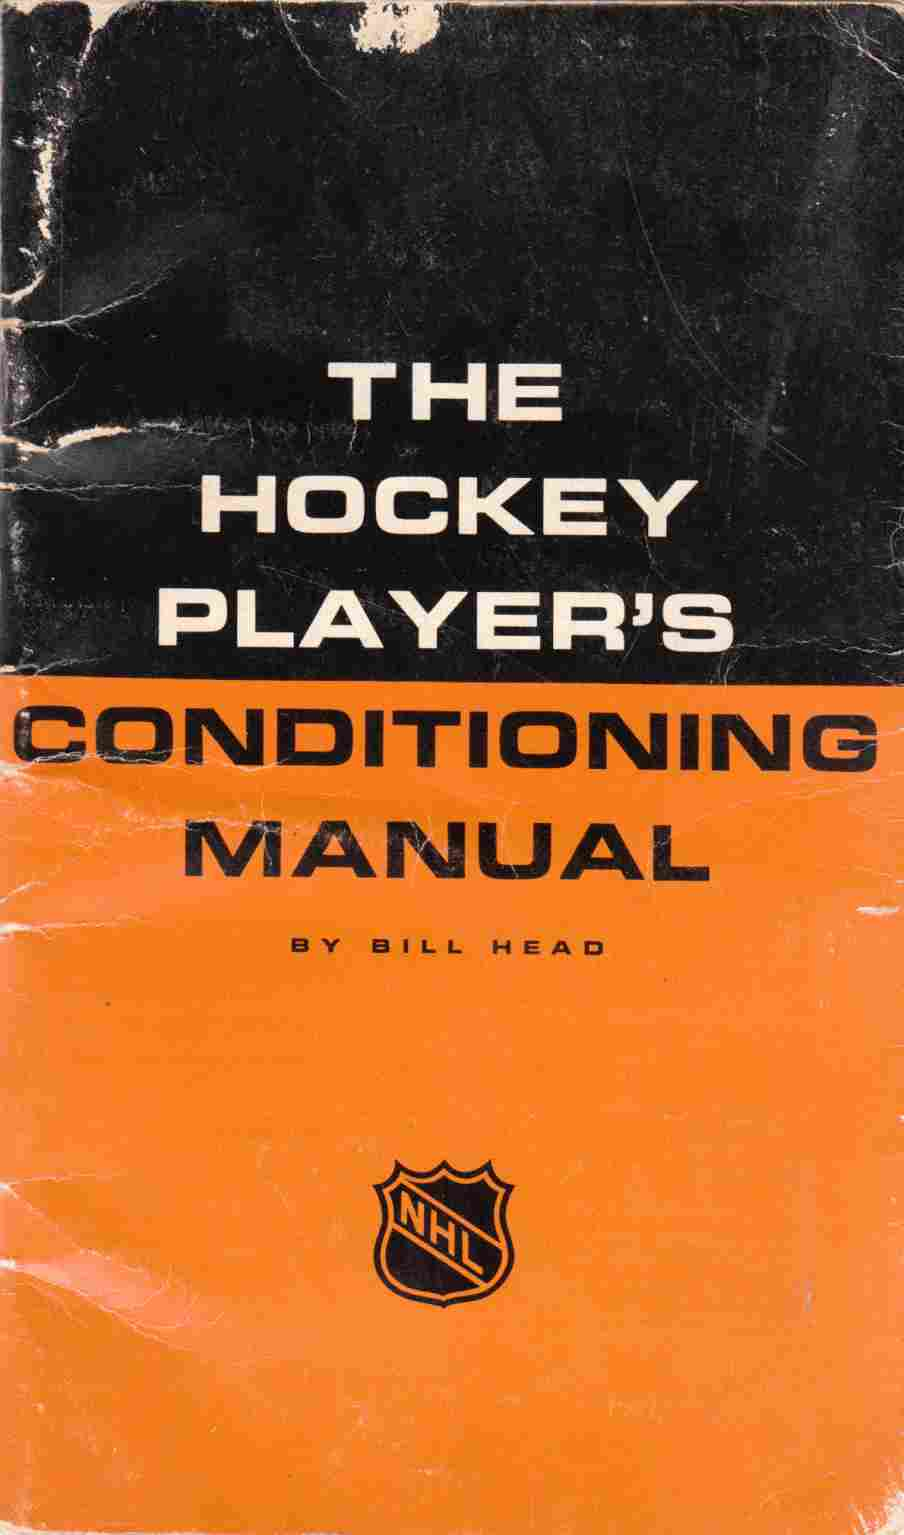 Image for The Hockey Player's Conditioning Manual